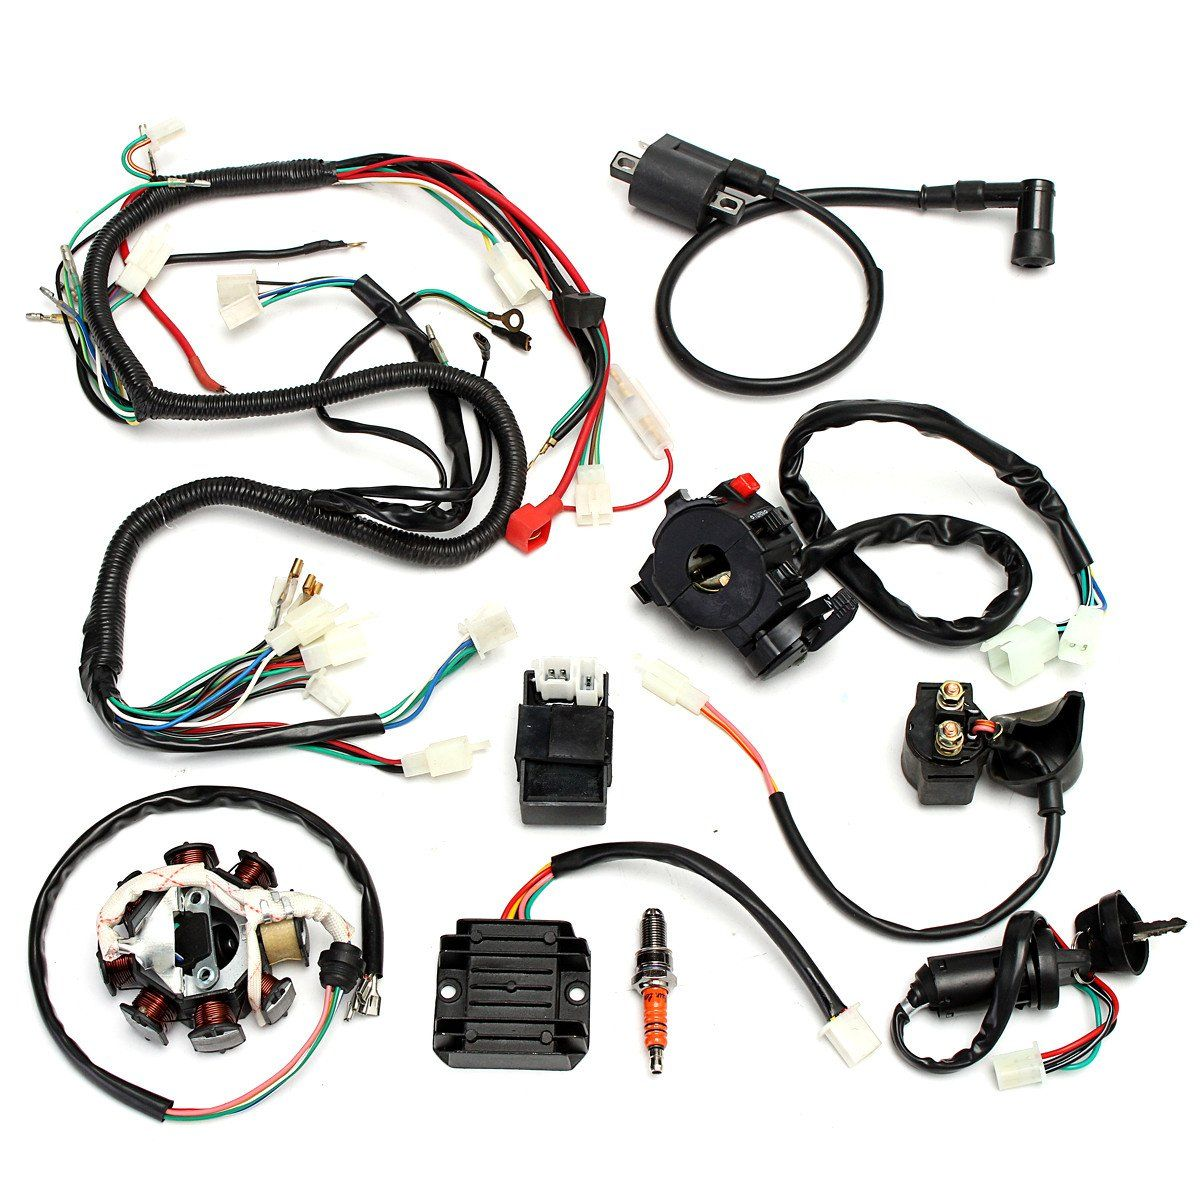 small resolution of coolster 110cc atv parts furthermore 110cc pit bike engine diagram along with coolster 125cc atv wiring diagram and razor e300 stator 150cc tao tao